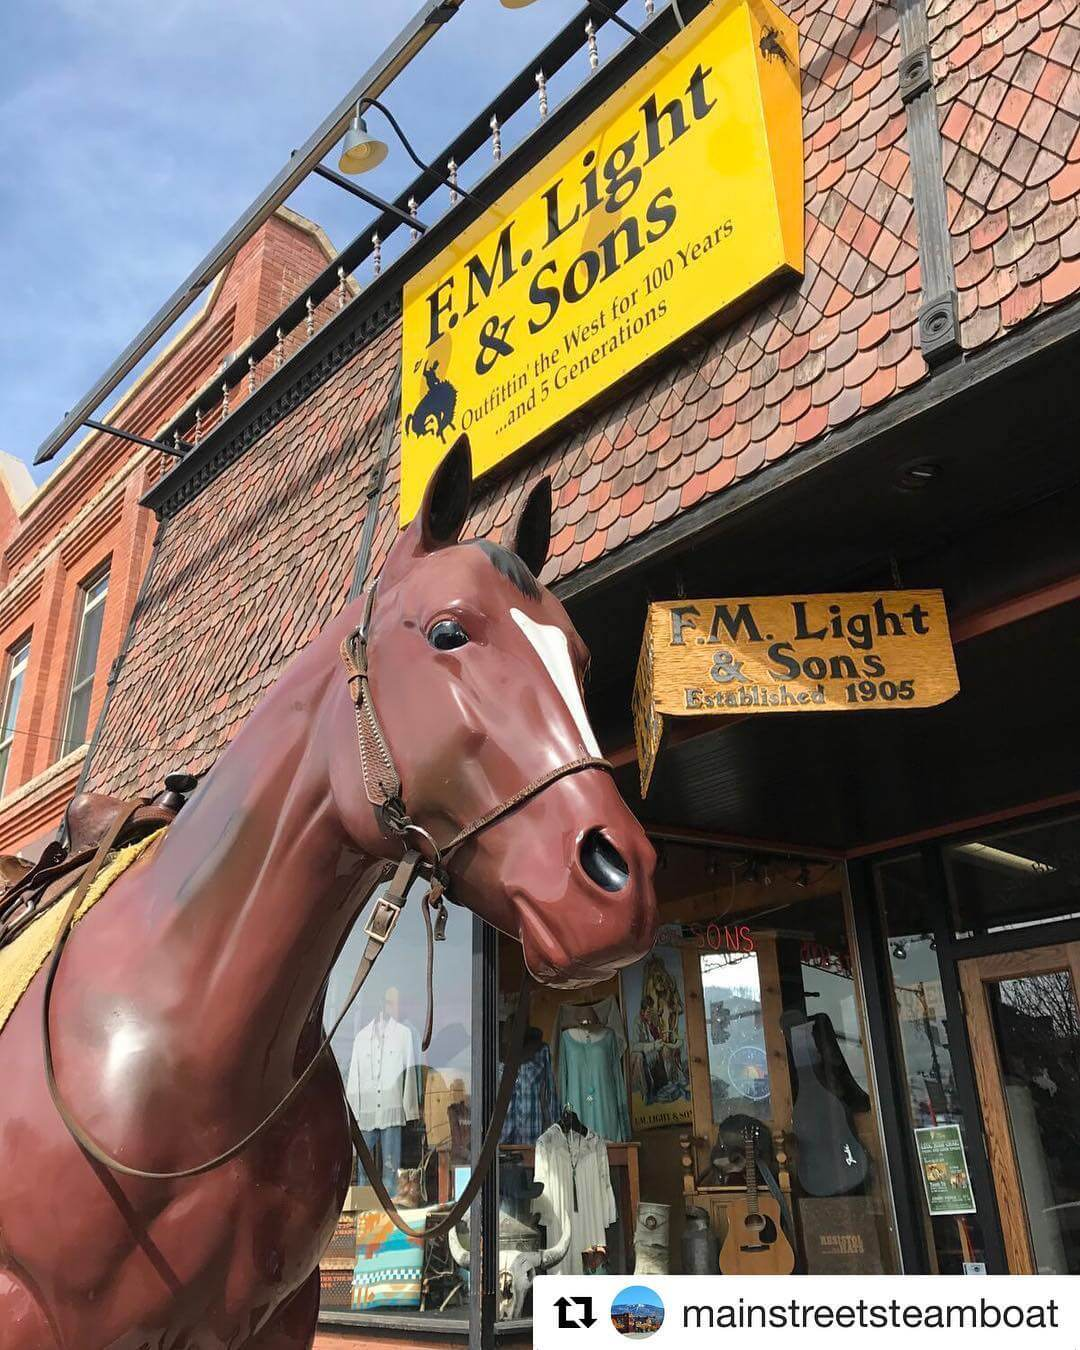 FM Light and Sons Storefront Entrance in Steamboat Springs Colorado